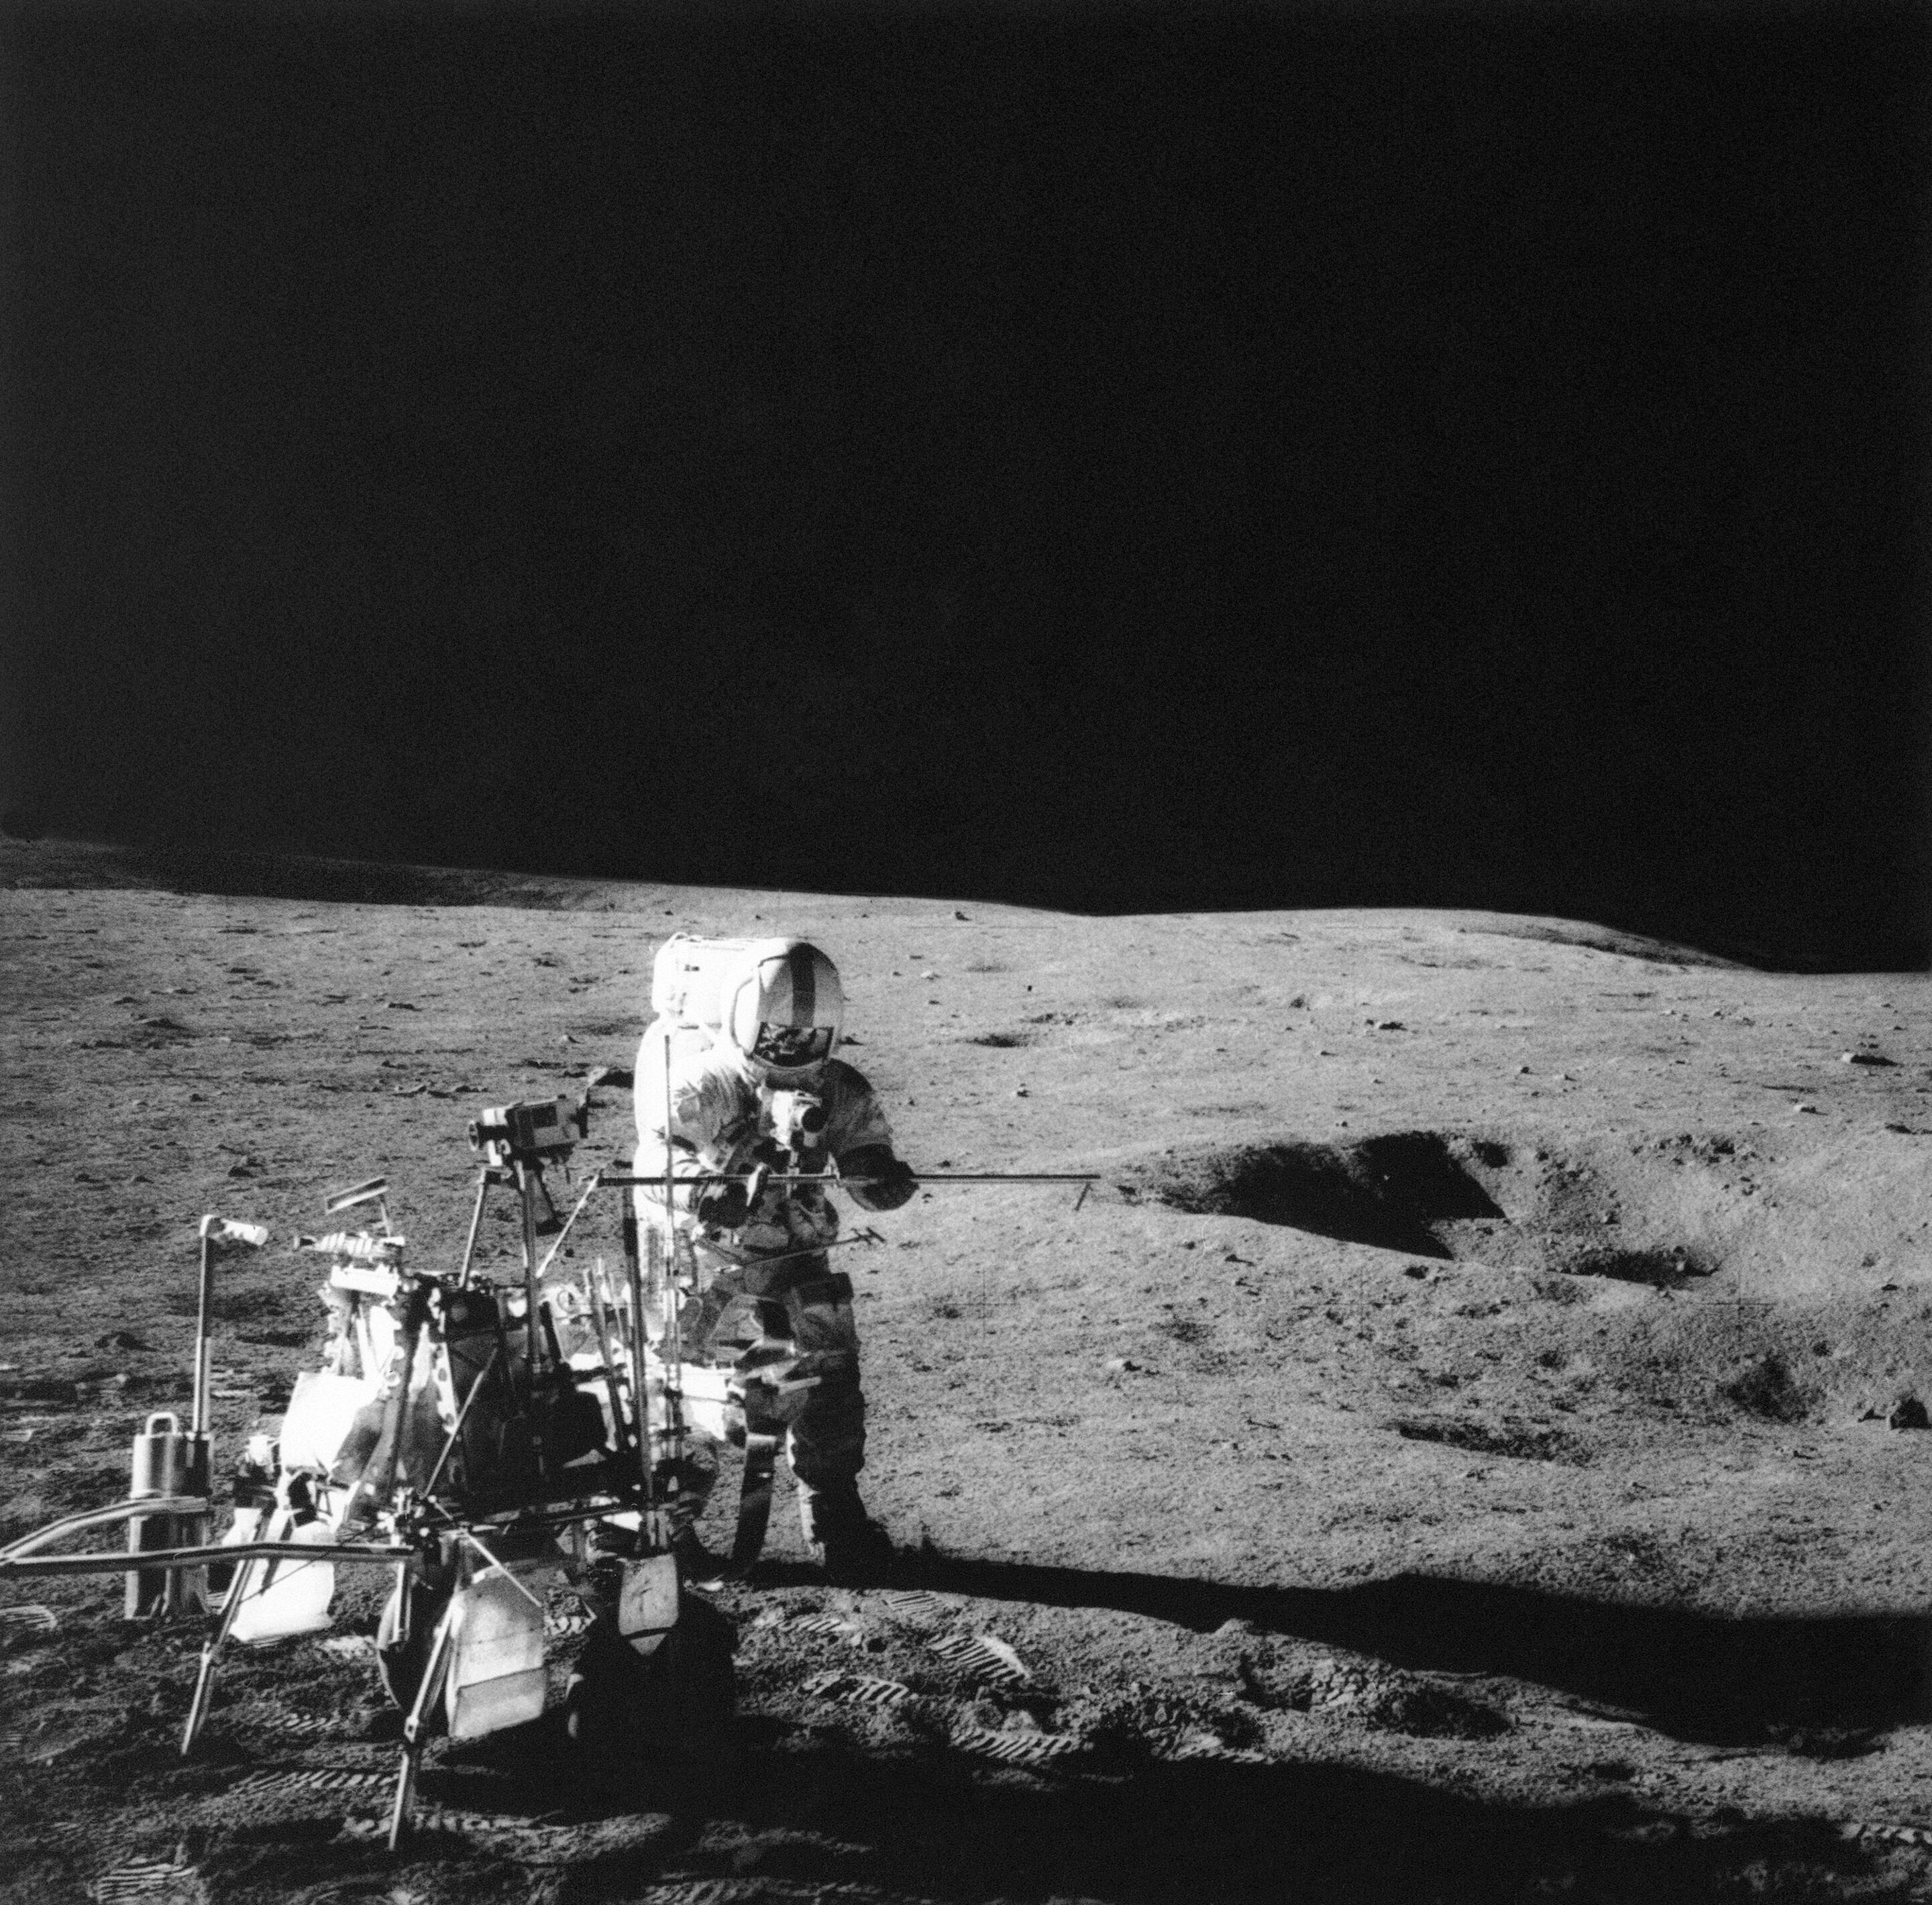 Shepard put golf on moon 50 years ago